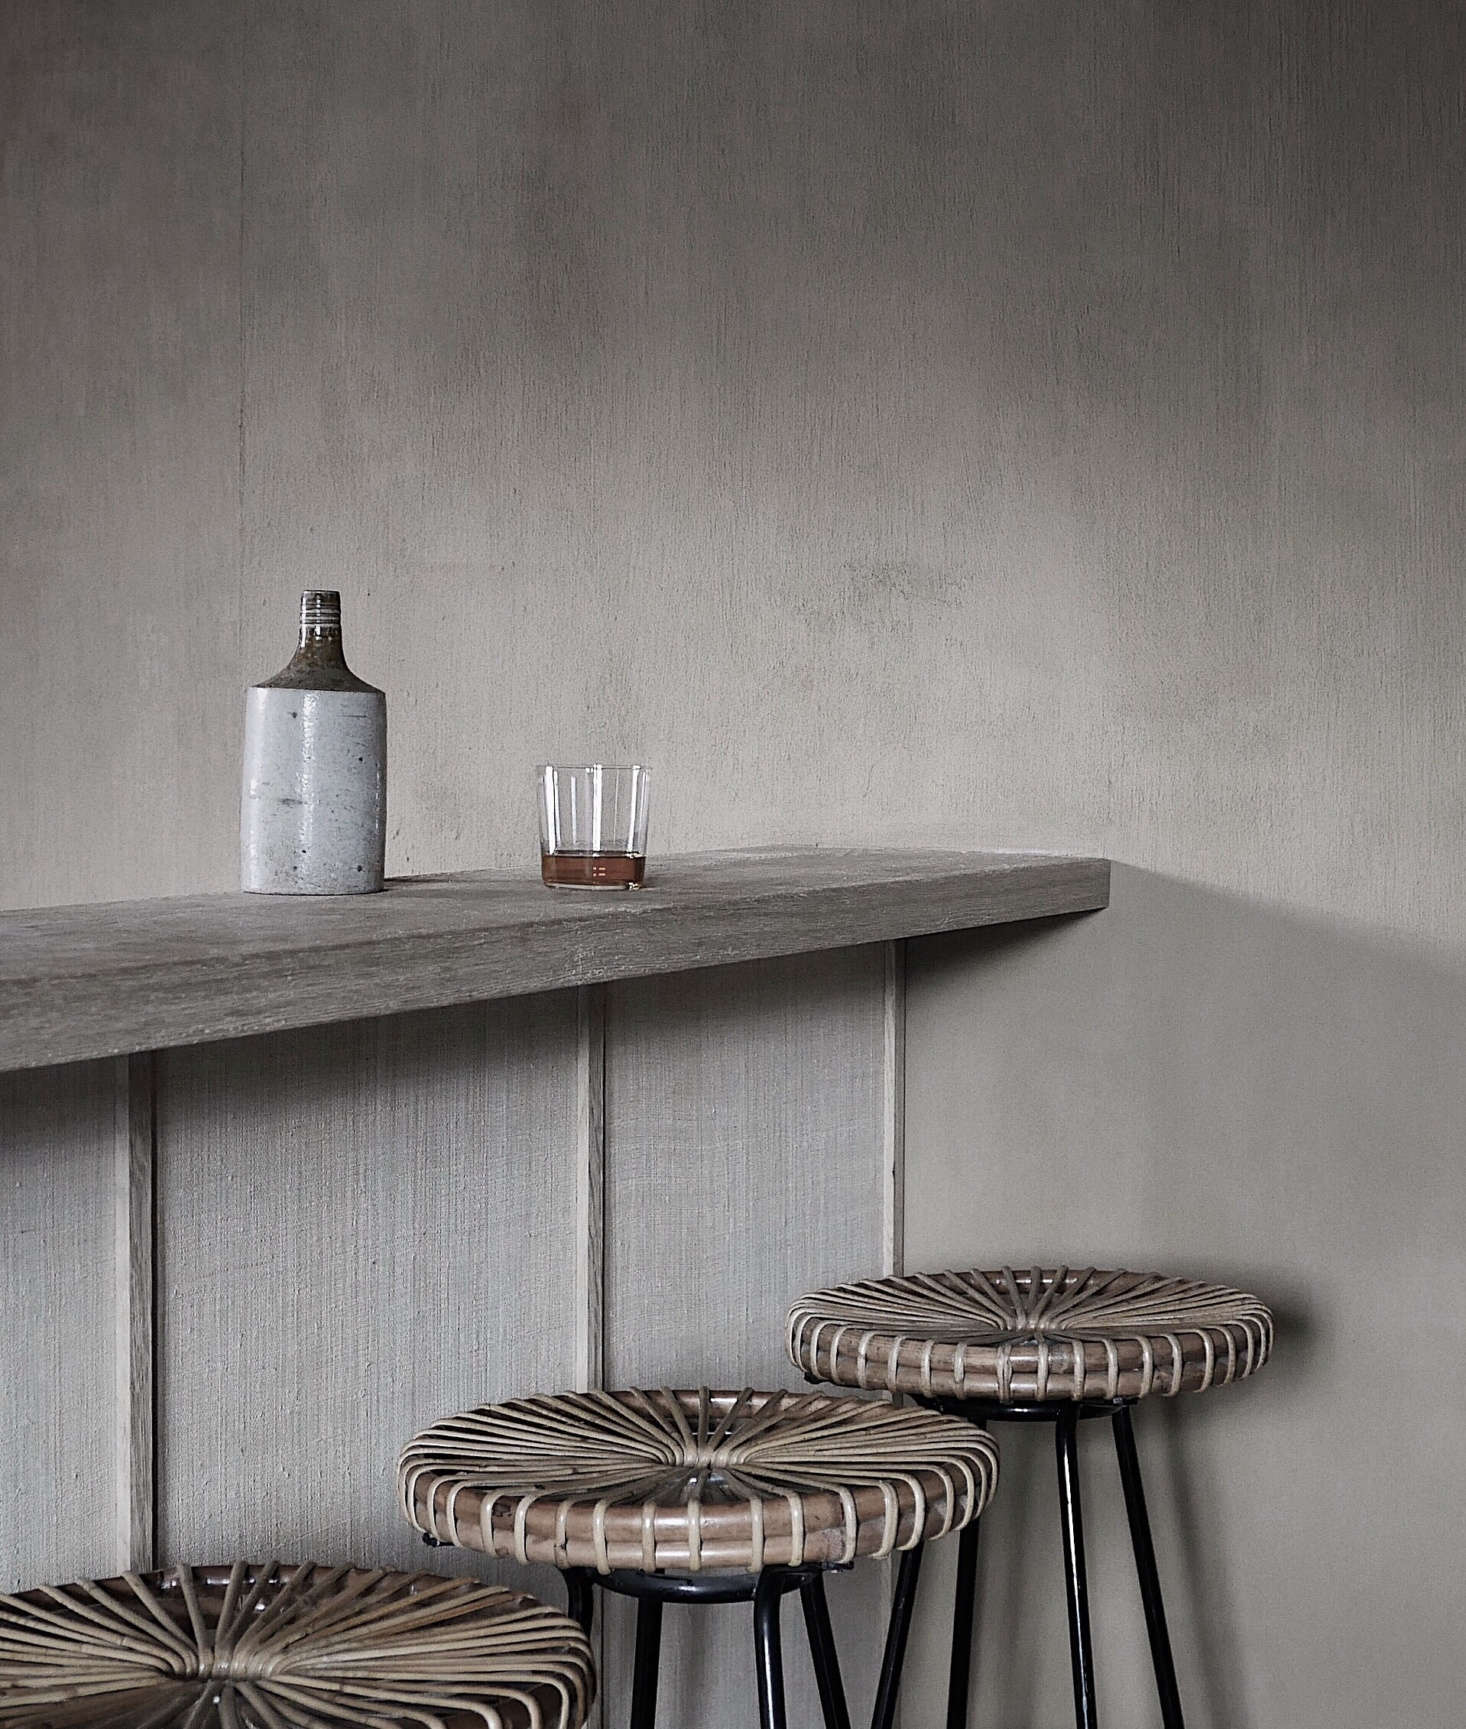 The lodge bar, aNathalie Van Reeth design, is finished with hand-woven raffia. The vintage wicker stools are by Dirk van Sliedrecht.